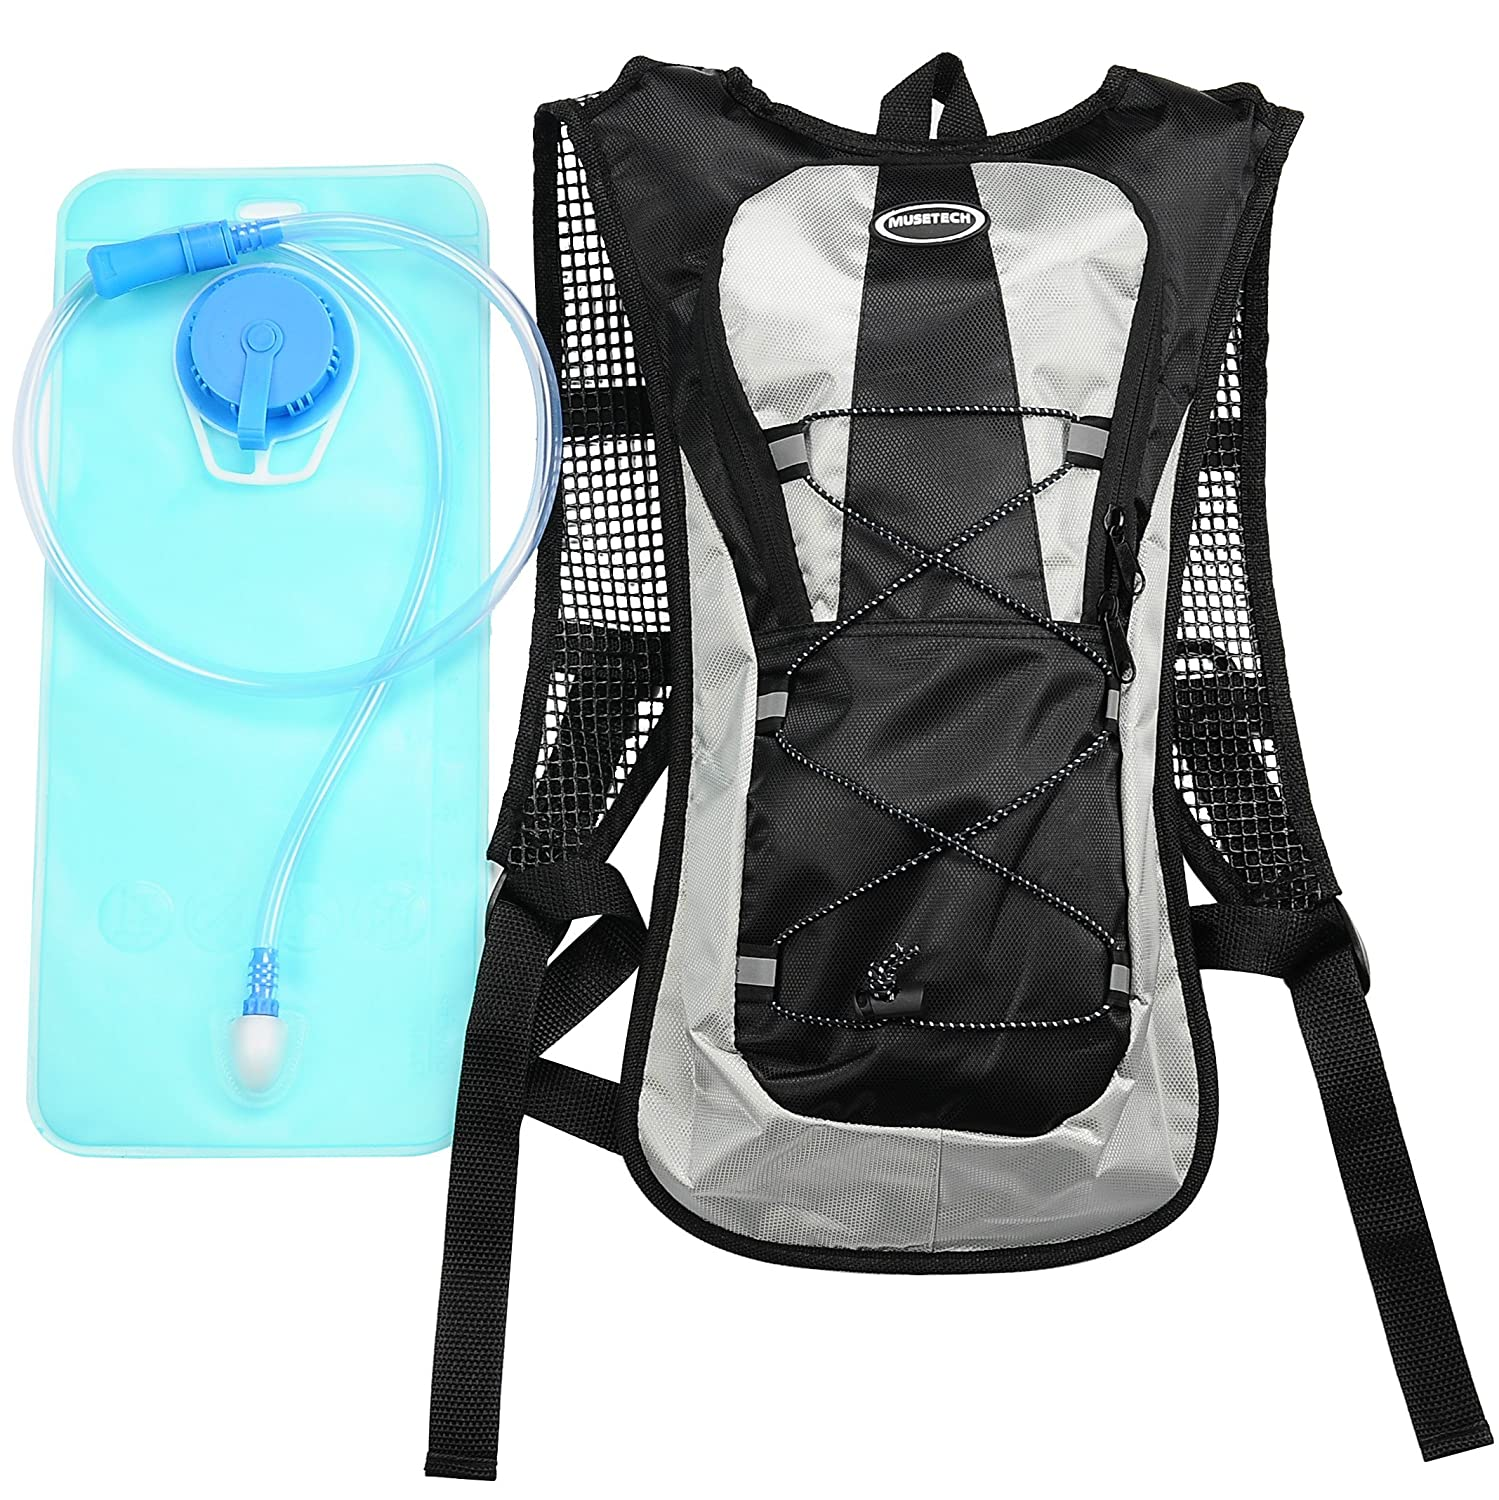 Amazon.com : Hydration Pack with 2L Backpack Water Bladder for ...